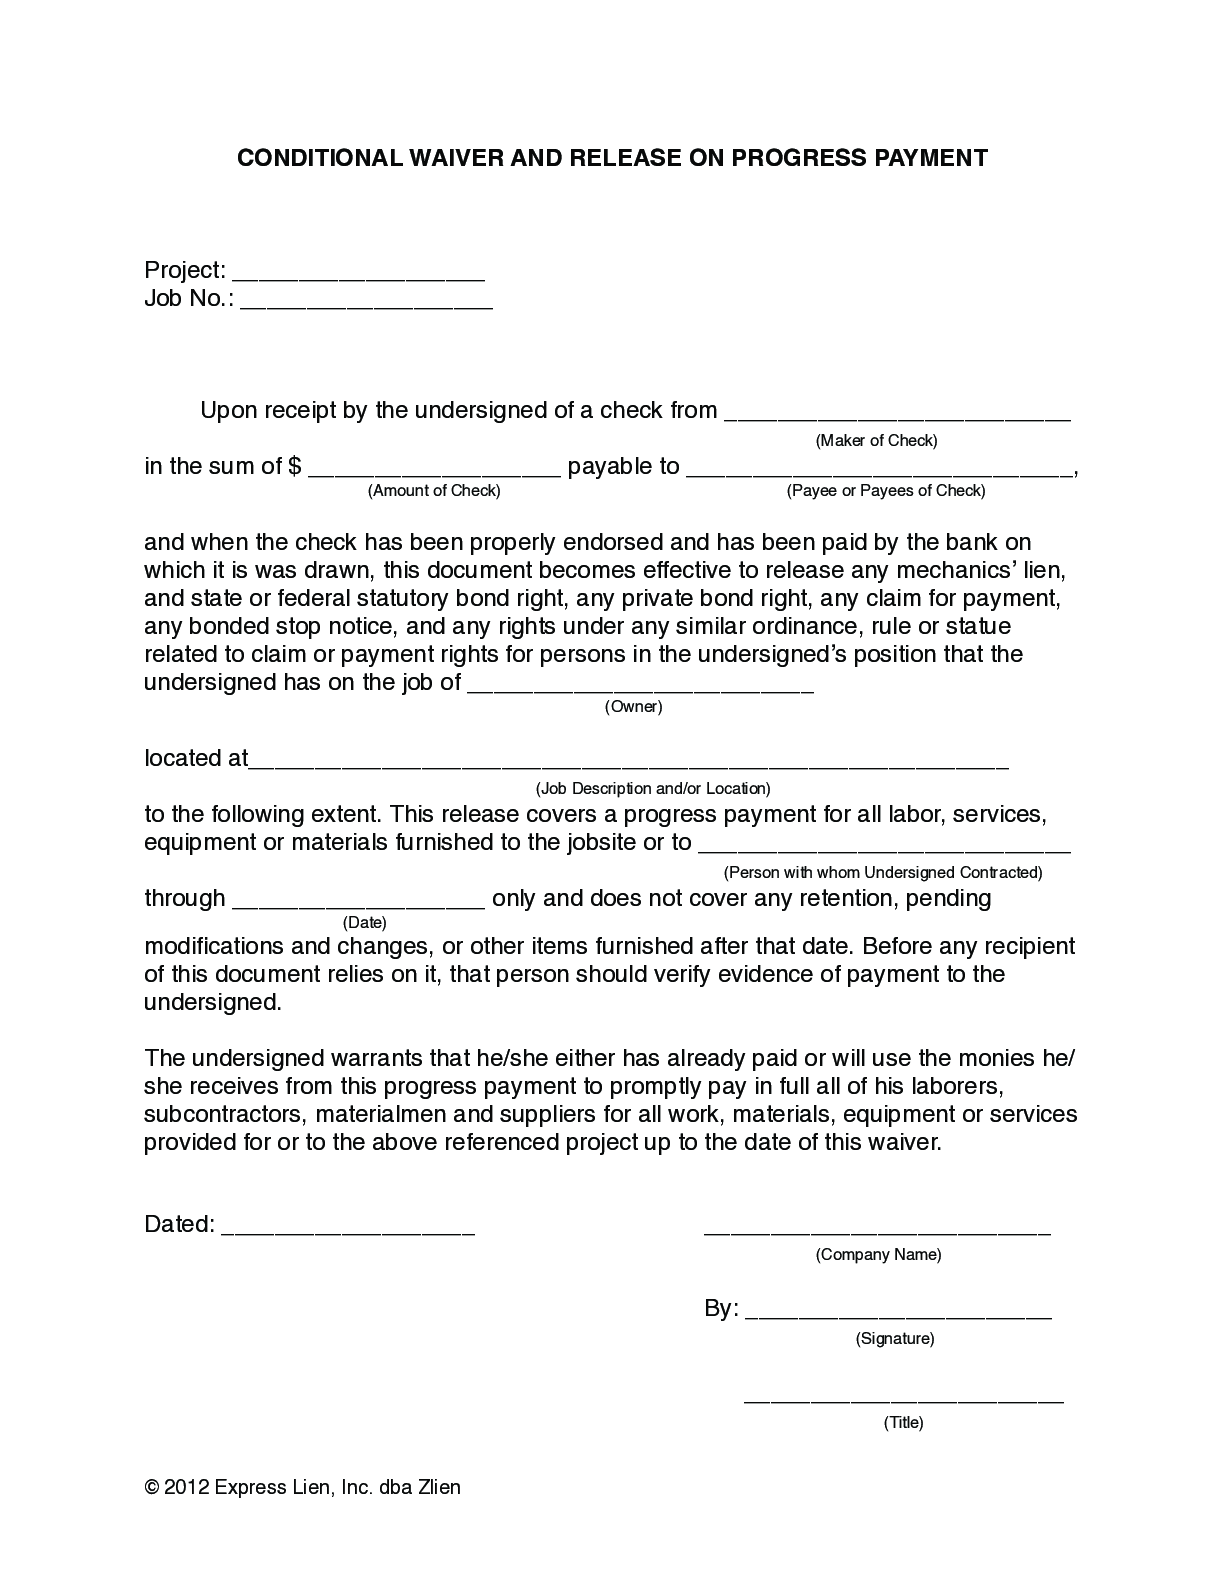 Arizona Partial Conditional Lien Waiver Form - free from